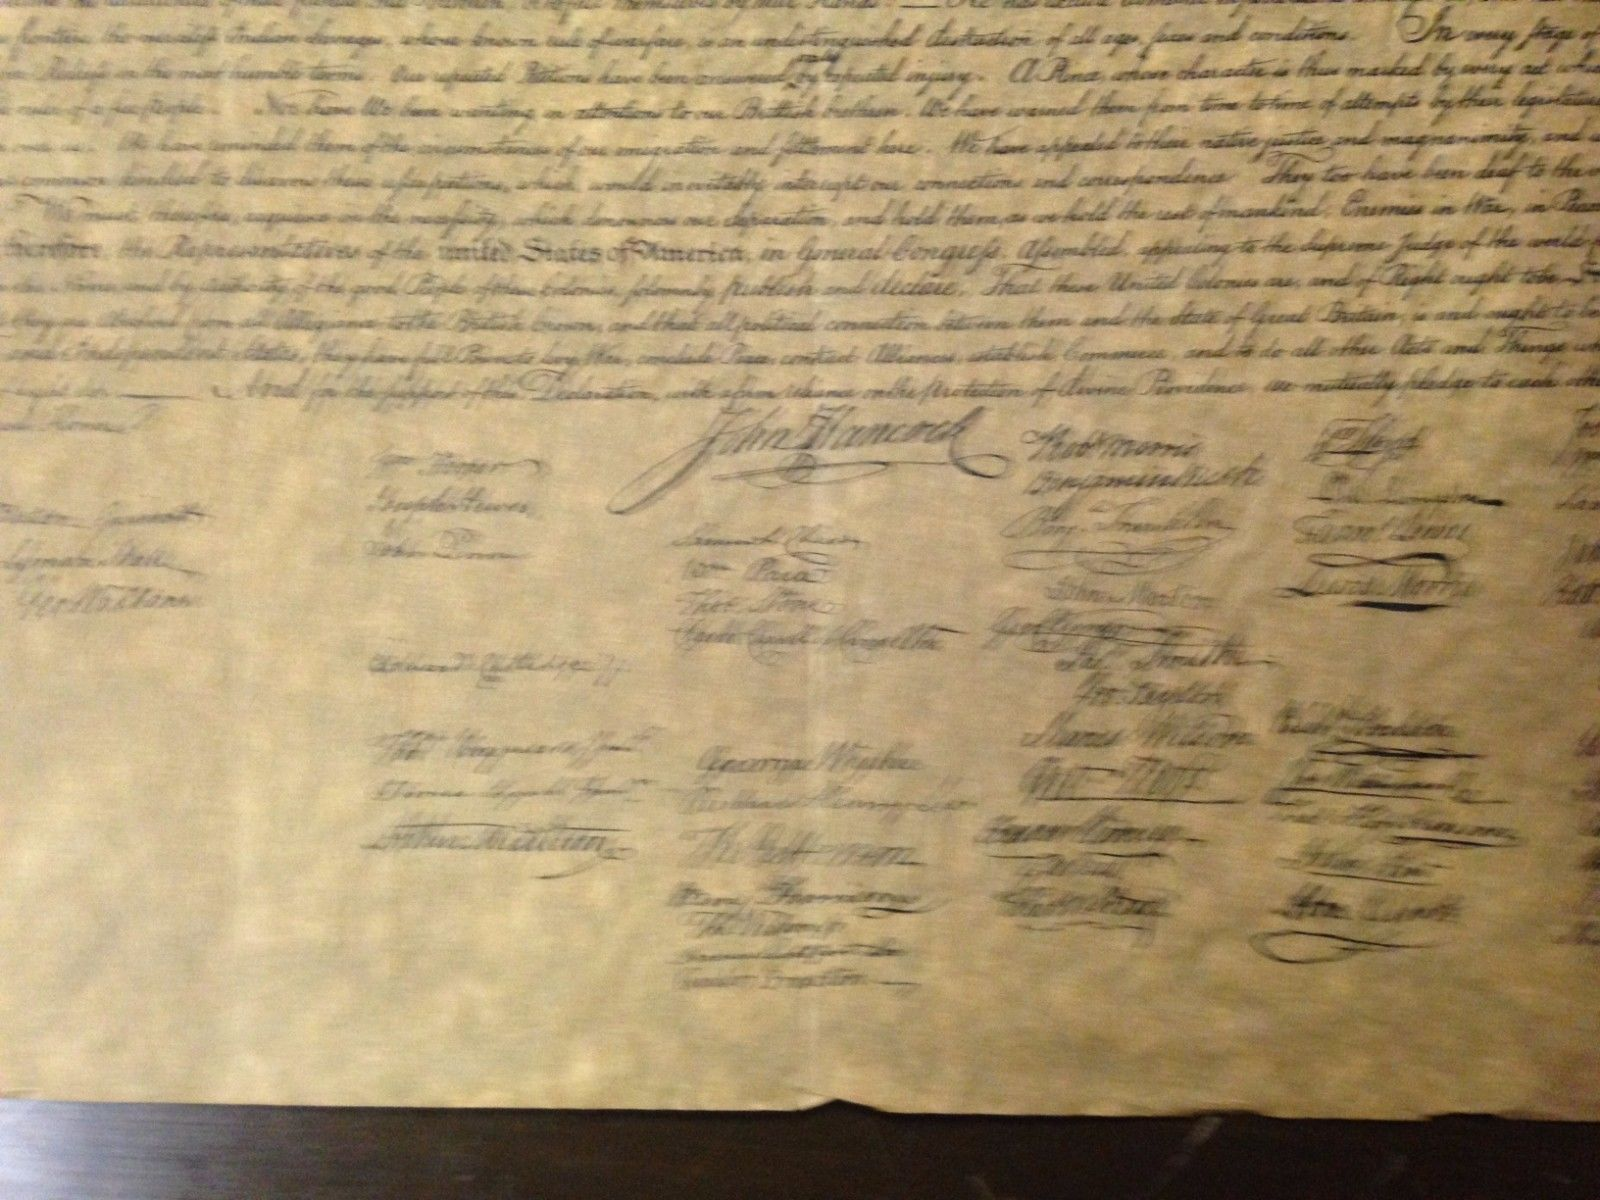 In Congress, July, 4th, 1776: The Unanimous Declaration By Unknown Artist